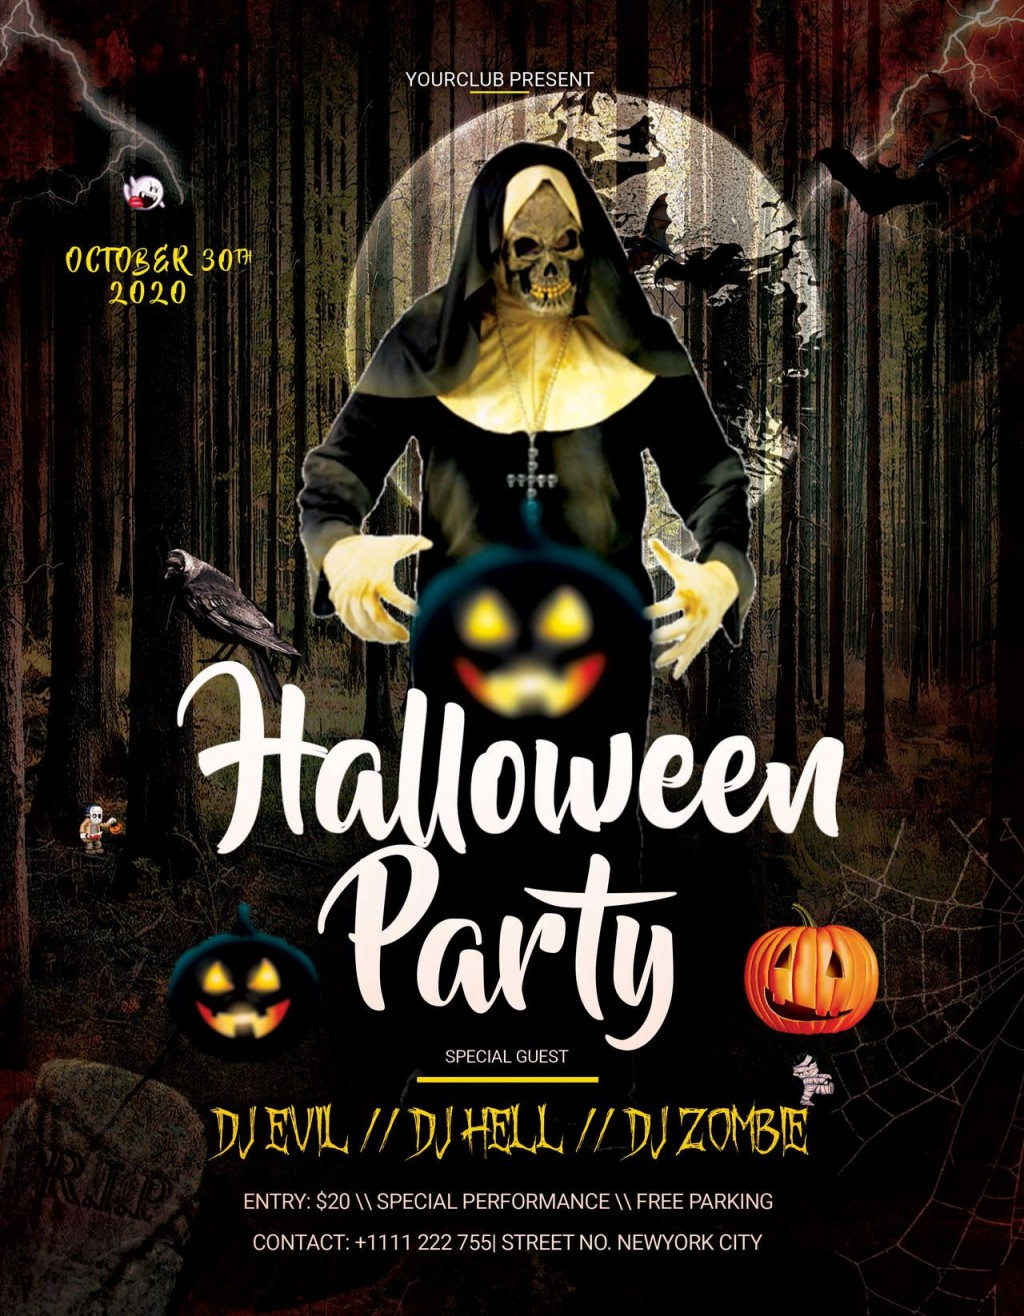 006 Excellent Free Halloween Party Flyer Template Inspiration  TemplatesLarge